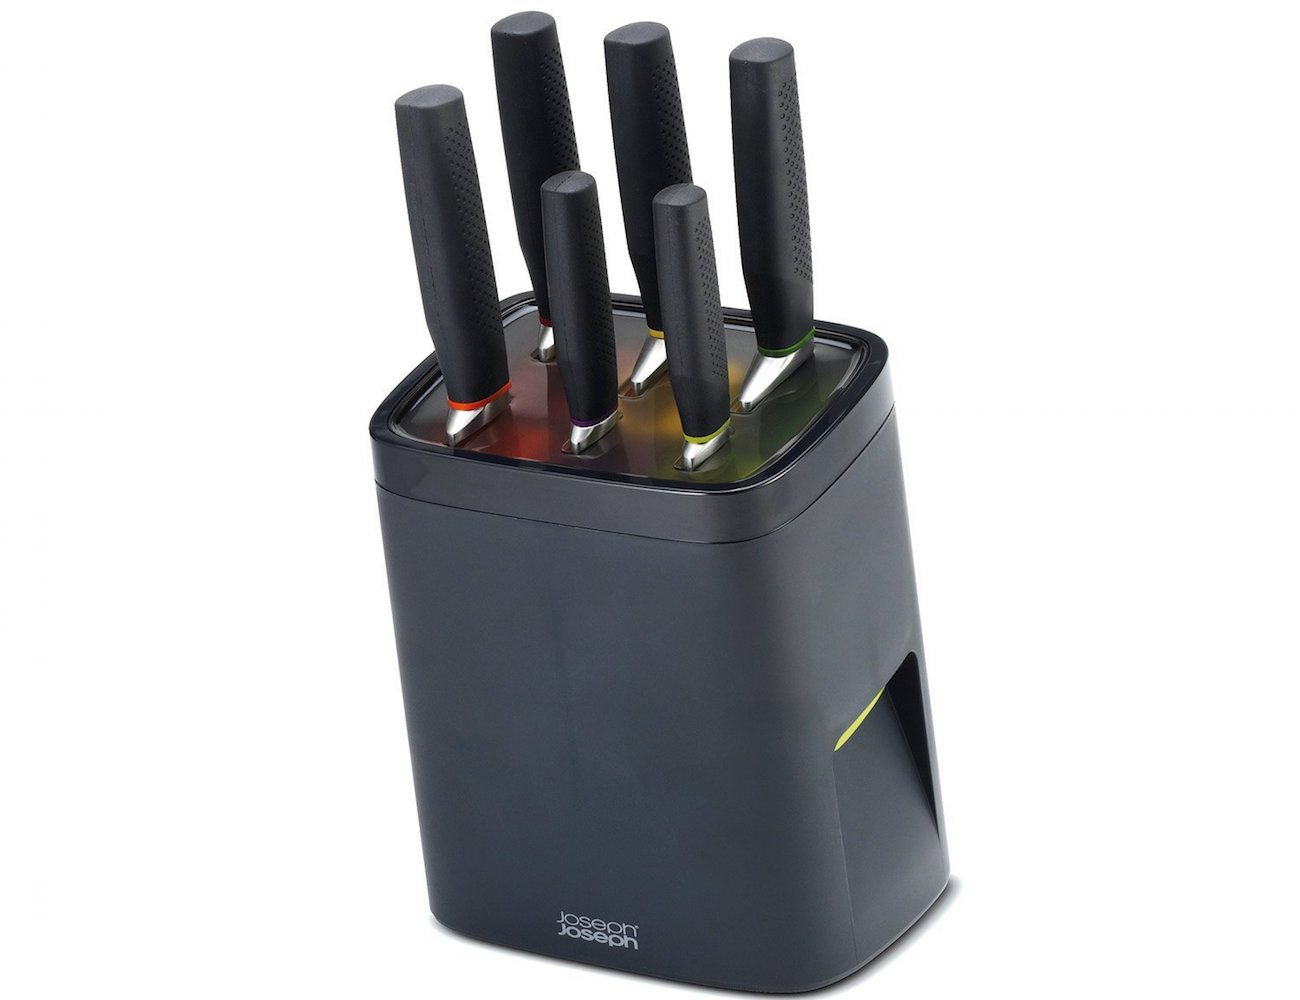 Cool Knife Block Sets Self Locking Knife Block Review The Gadget Flow